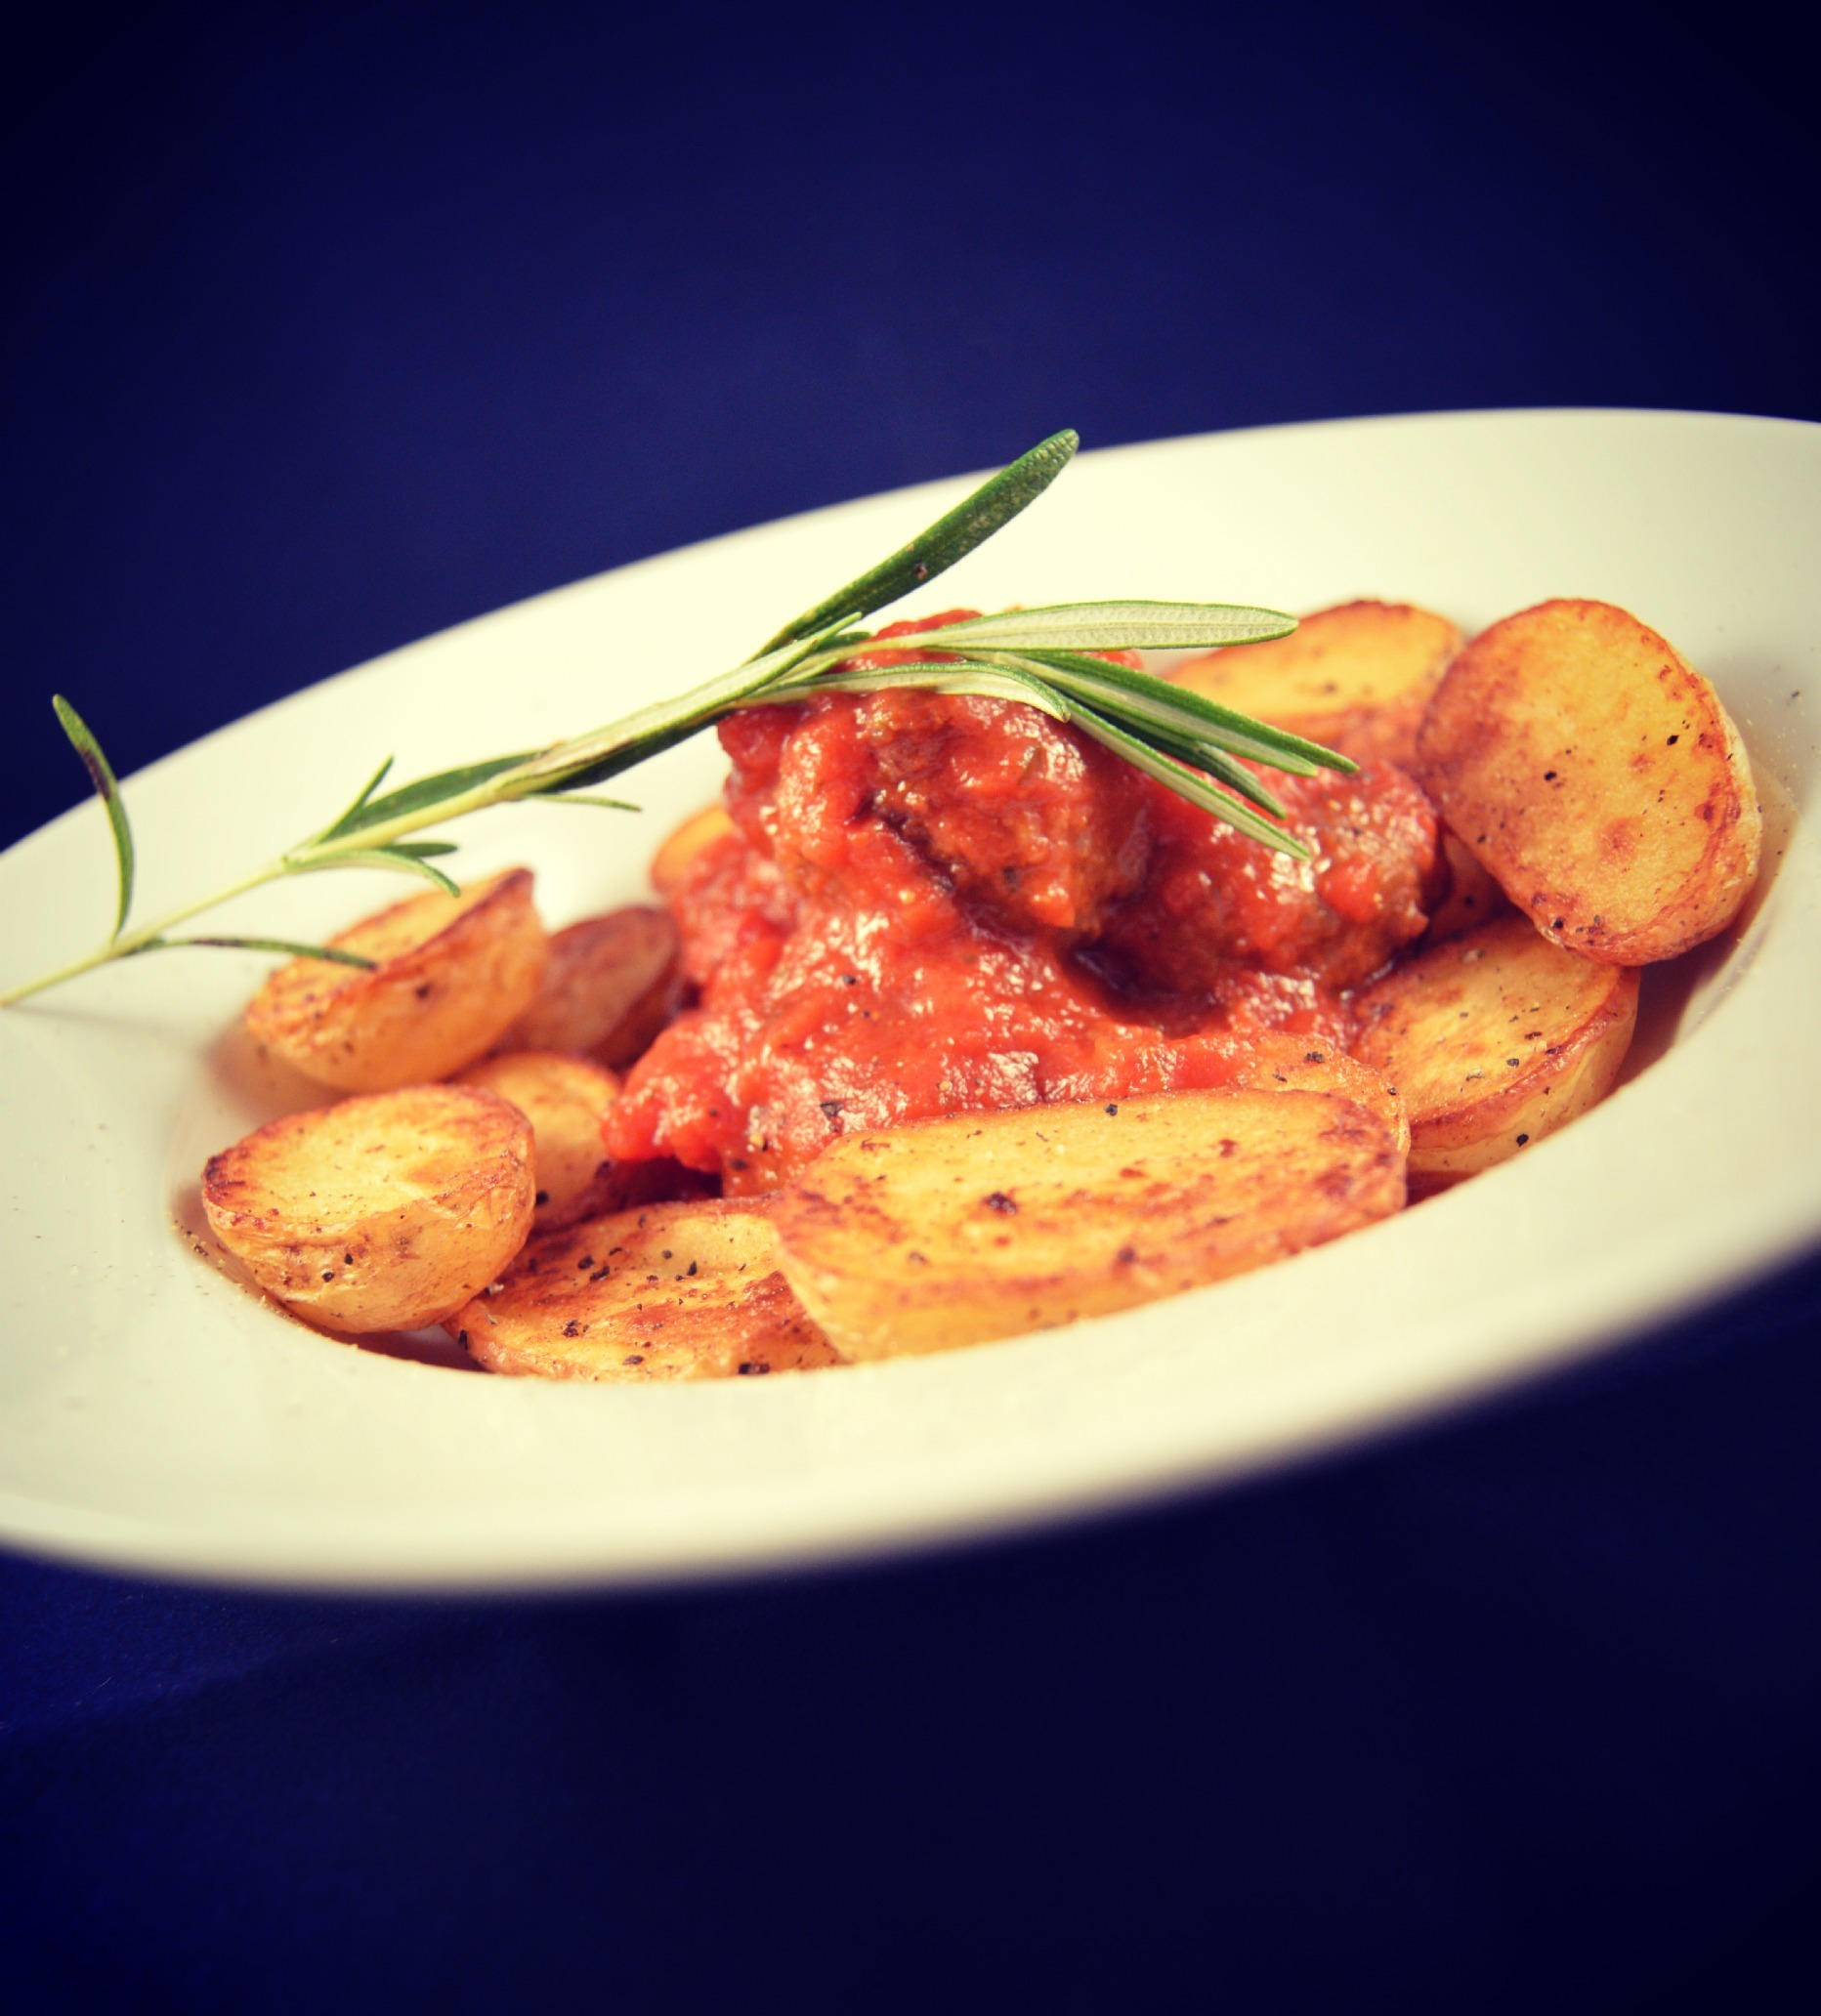 Beef meatballs with tomato sauce and baby potatoes